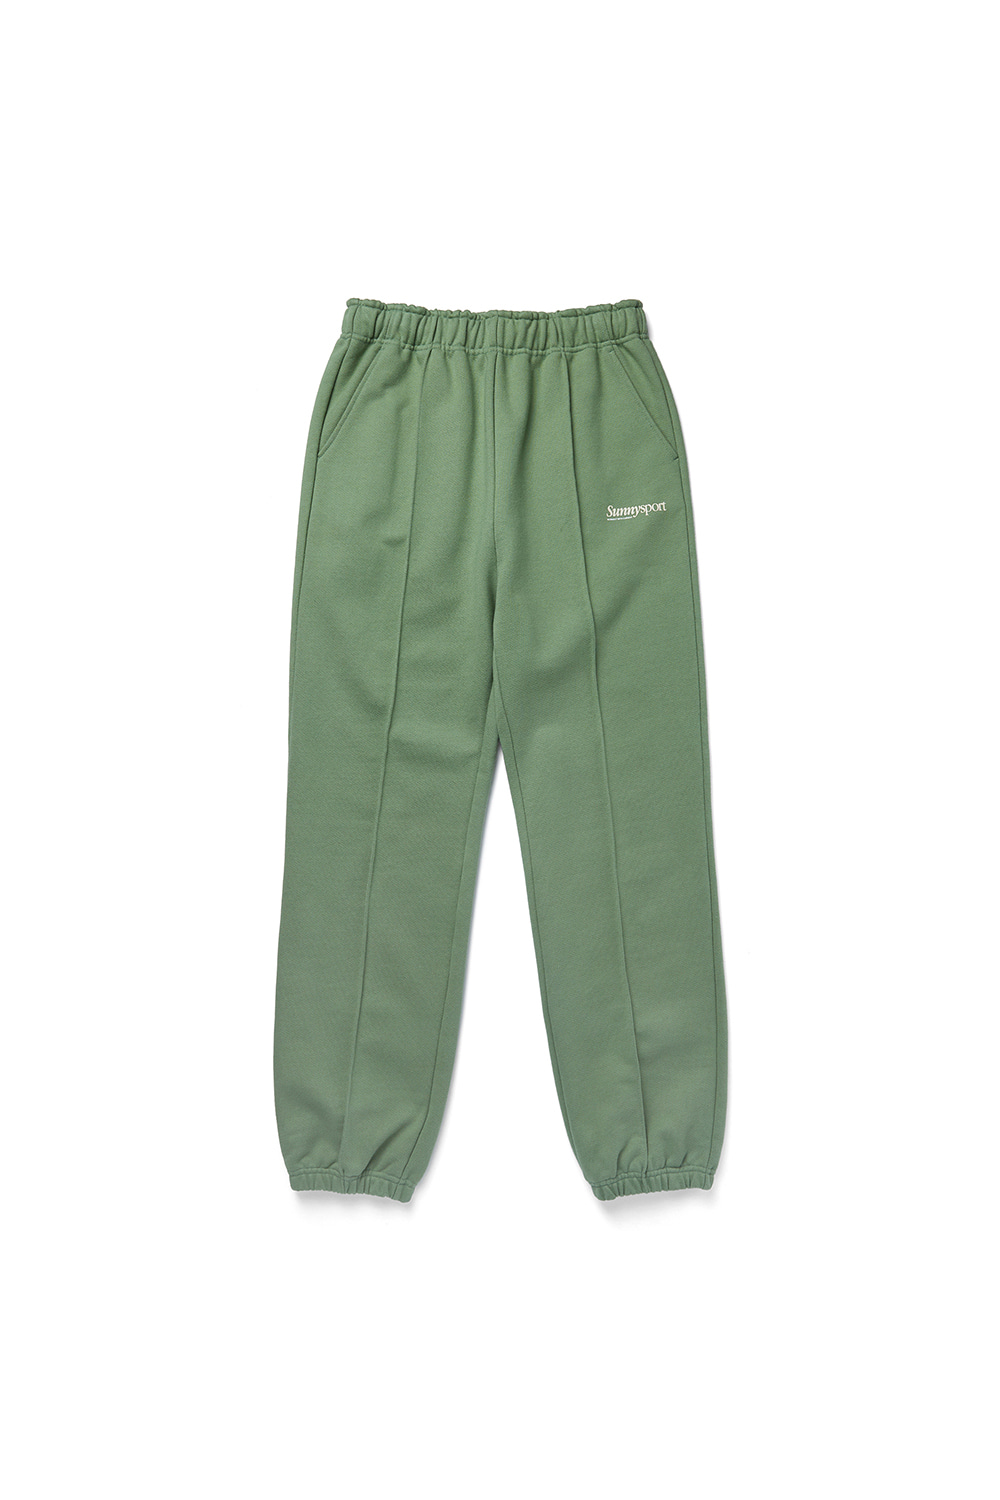 SUNNYSPORT SWEATPANTS [GREEN]